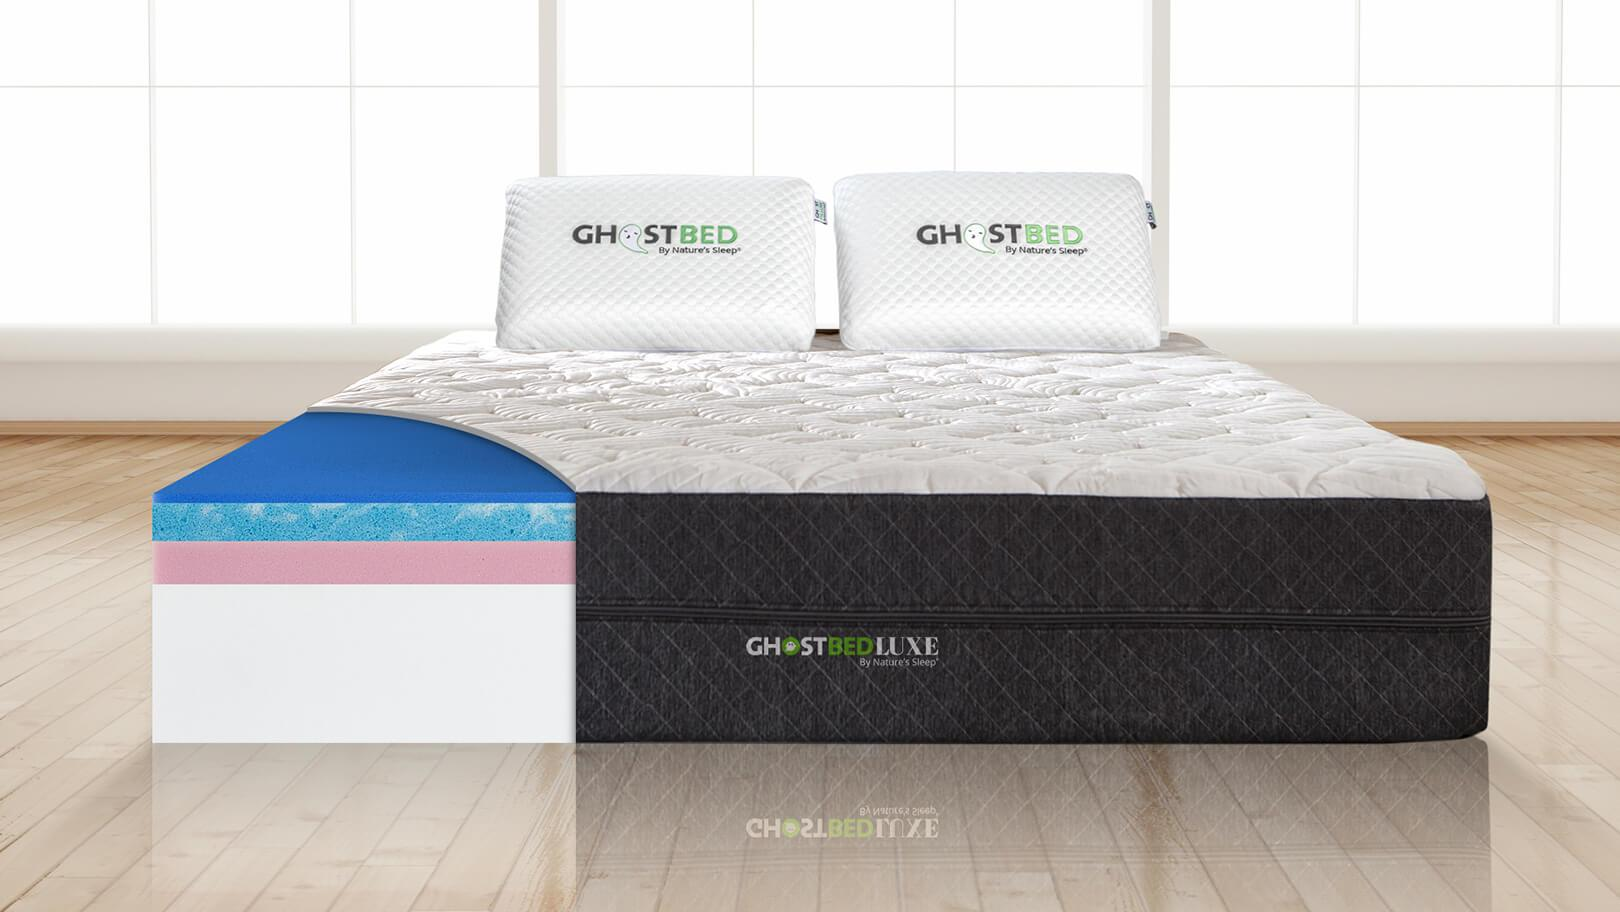 GhostBed Luxe Mattress Review - Staged Showing Layers